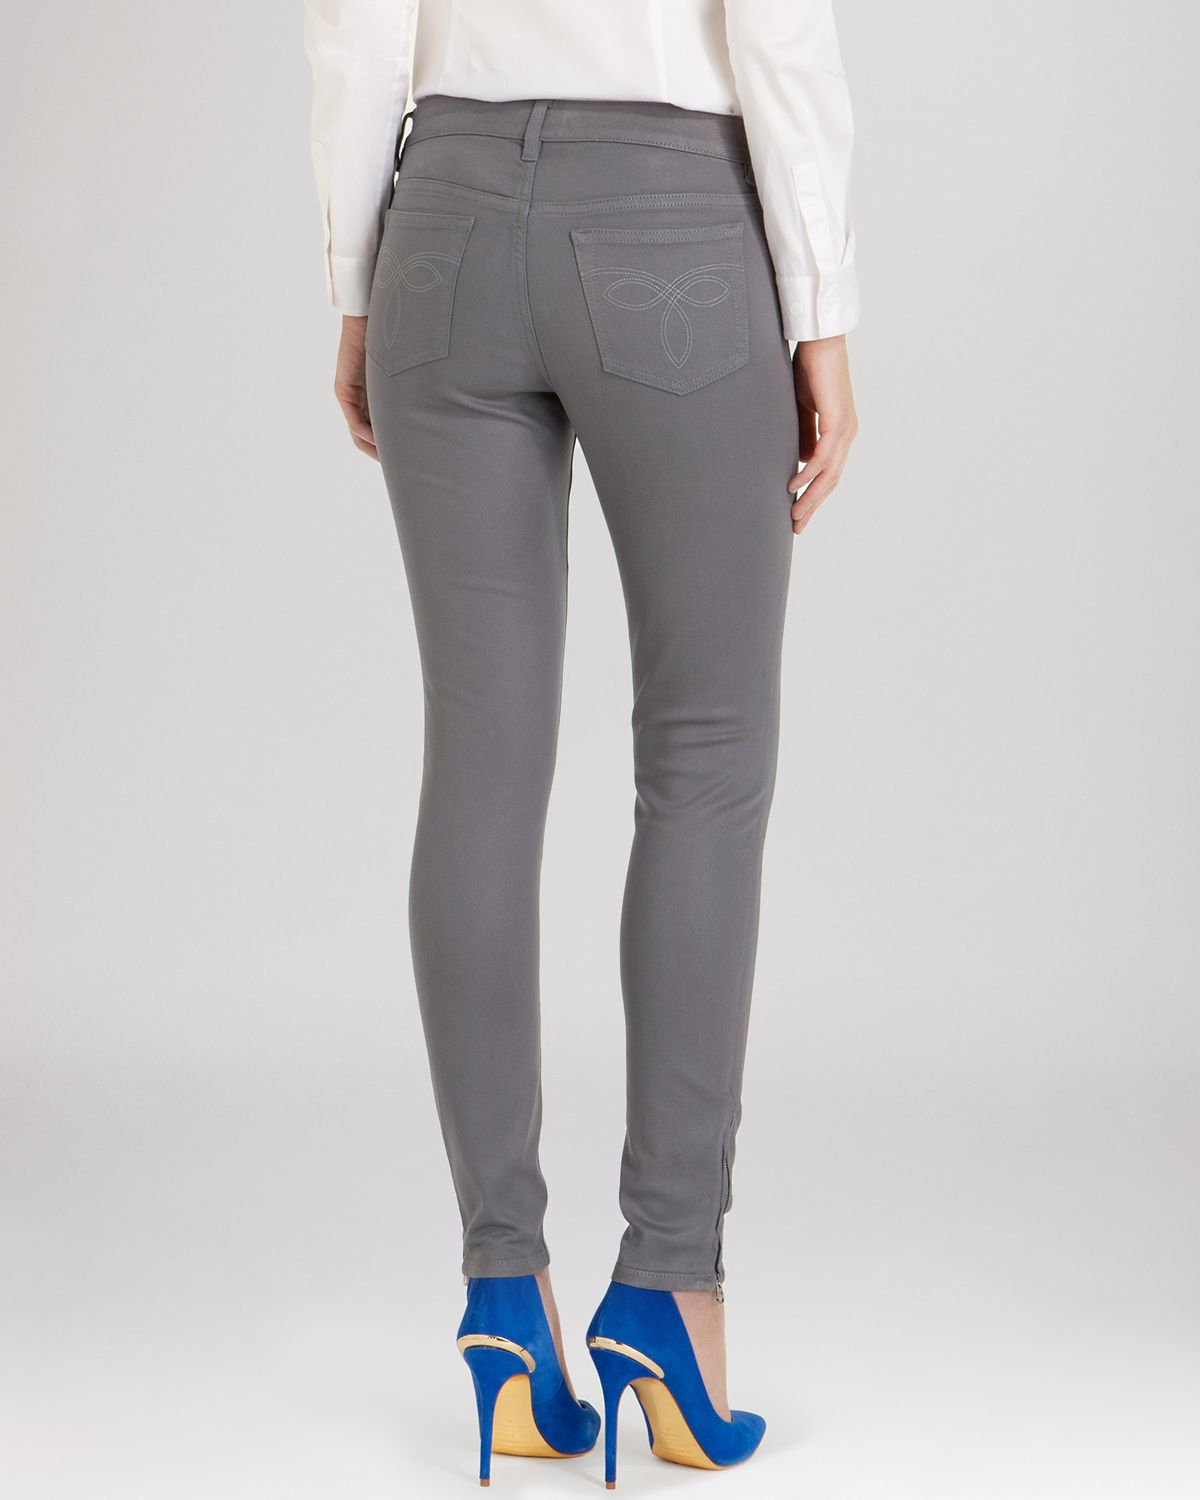 finest selection bb35c 5ce48 ted-baker-mid-grey-anna-waxed-skinny-jeans -in-mid-grey-gray-product-1-705333928-normal.jpeg